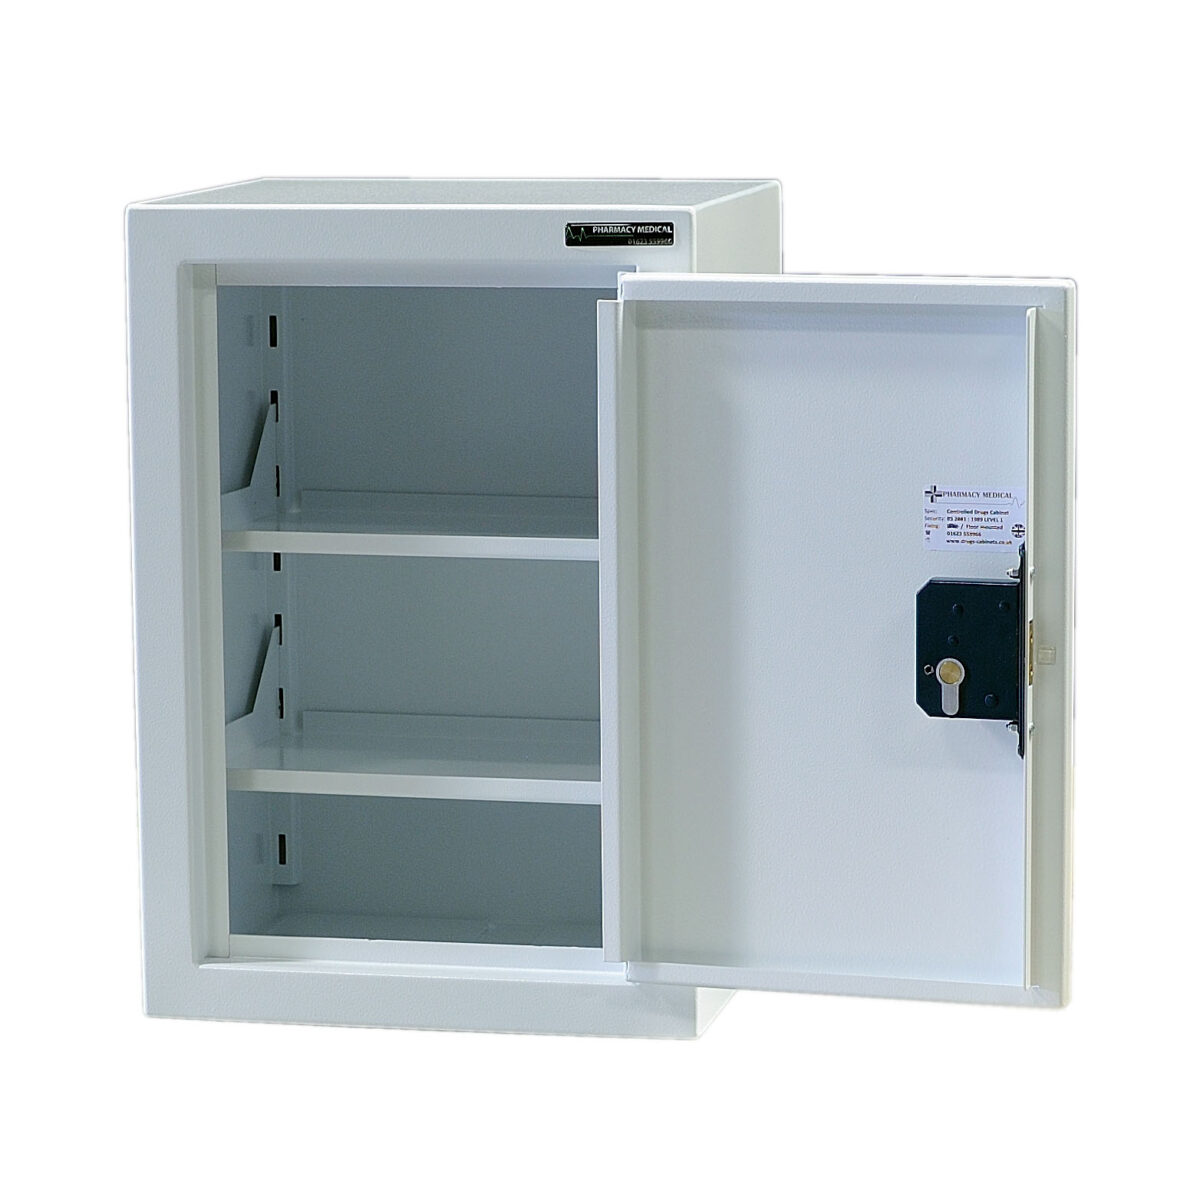 HECDC905 Controlled Drugs cabinet